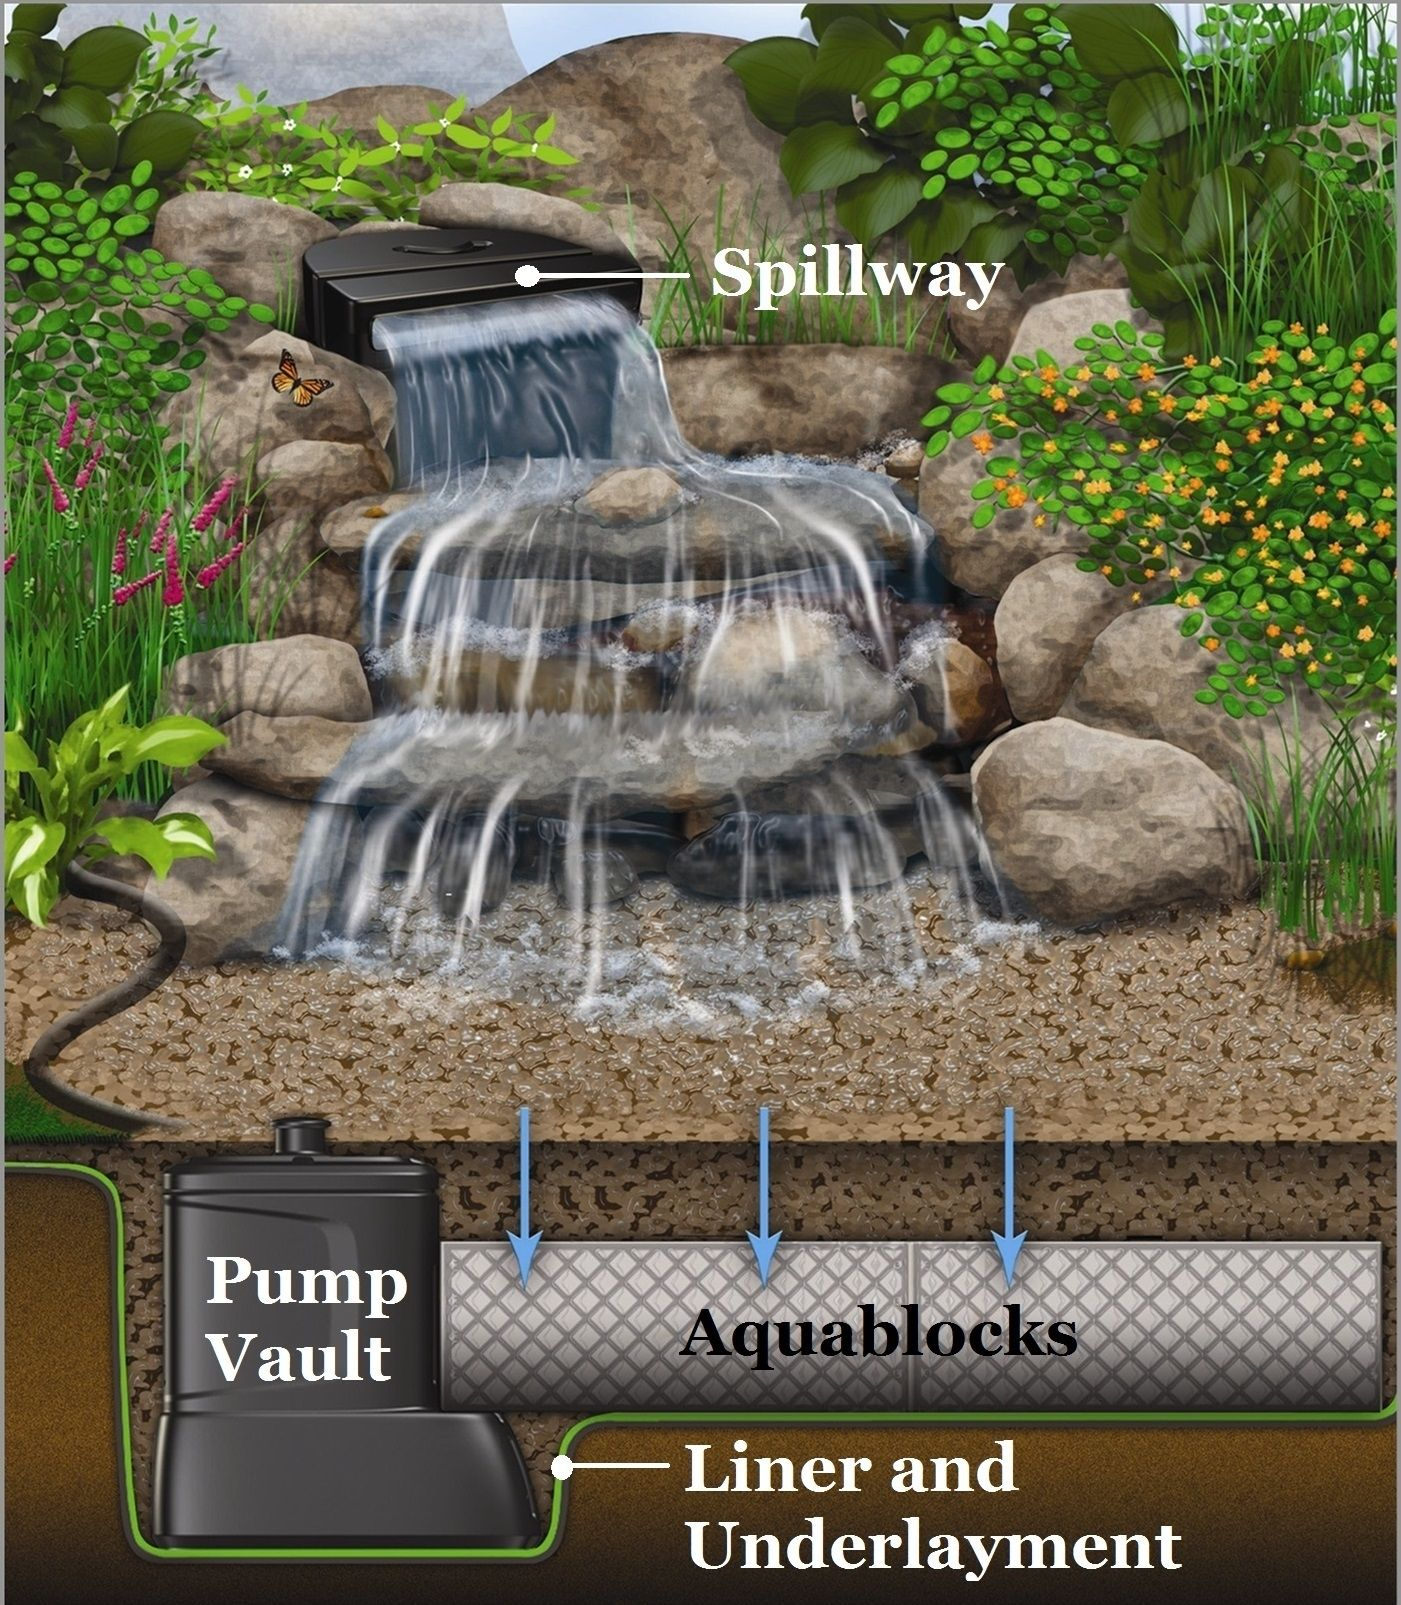 at premier ponds we provide numerous options for small backyard